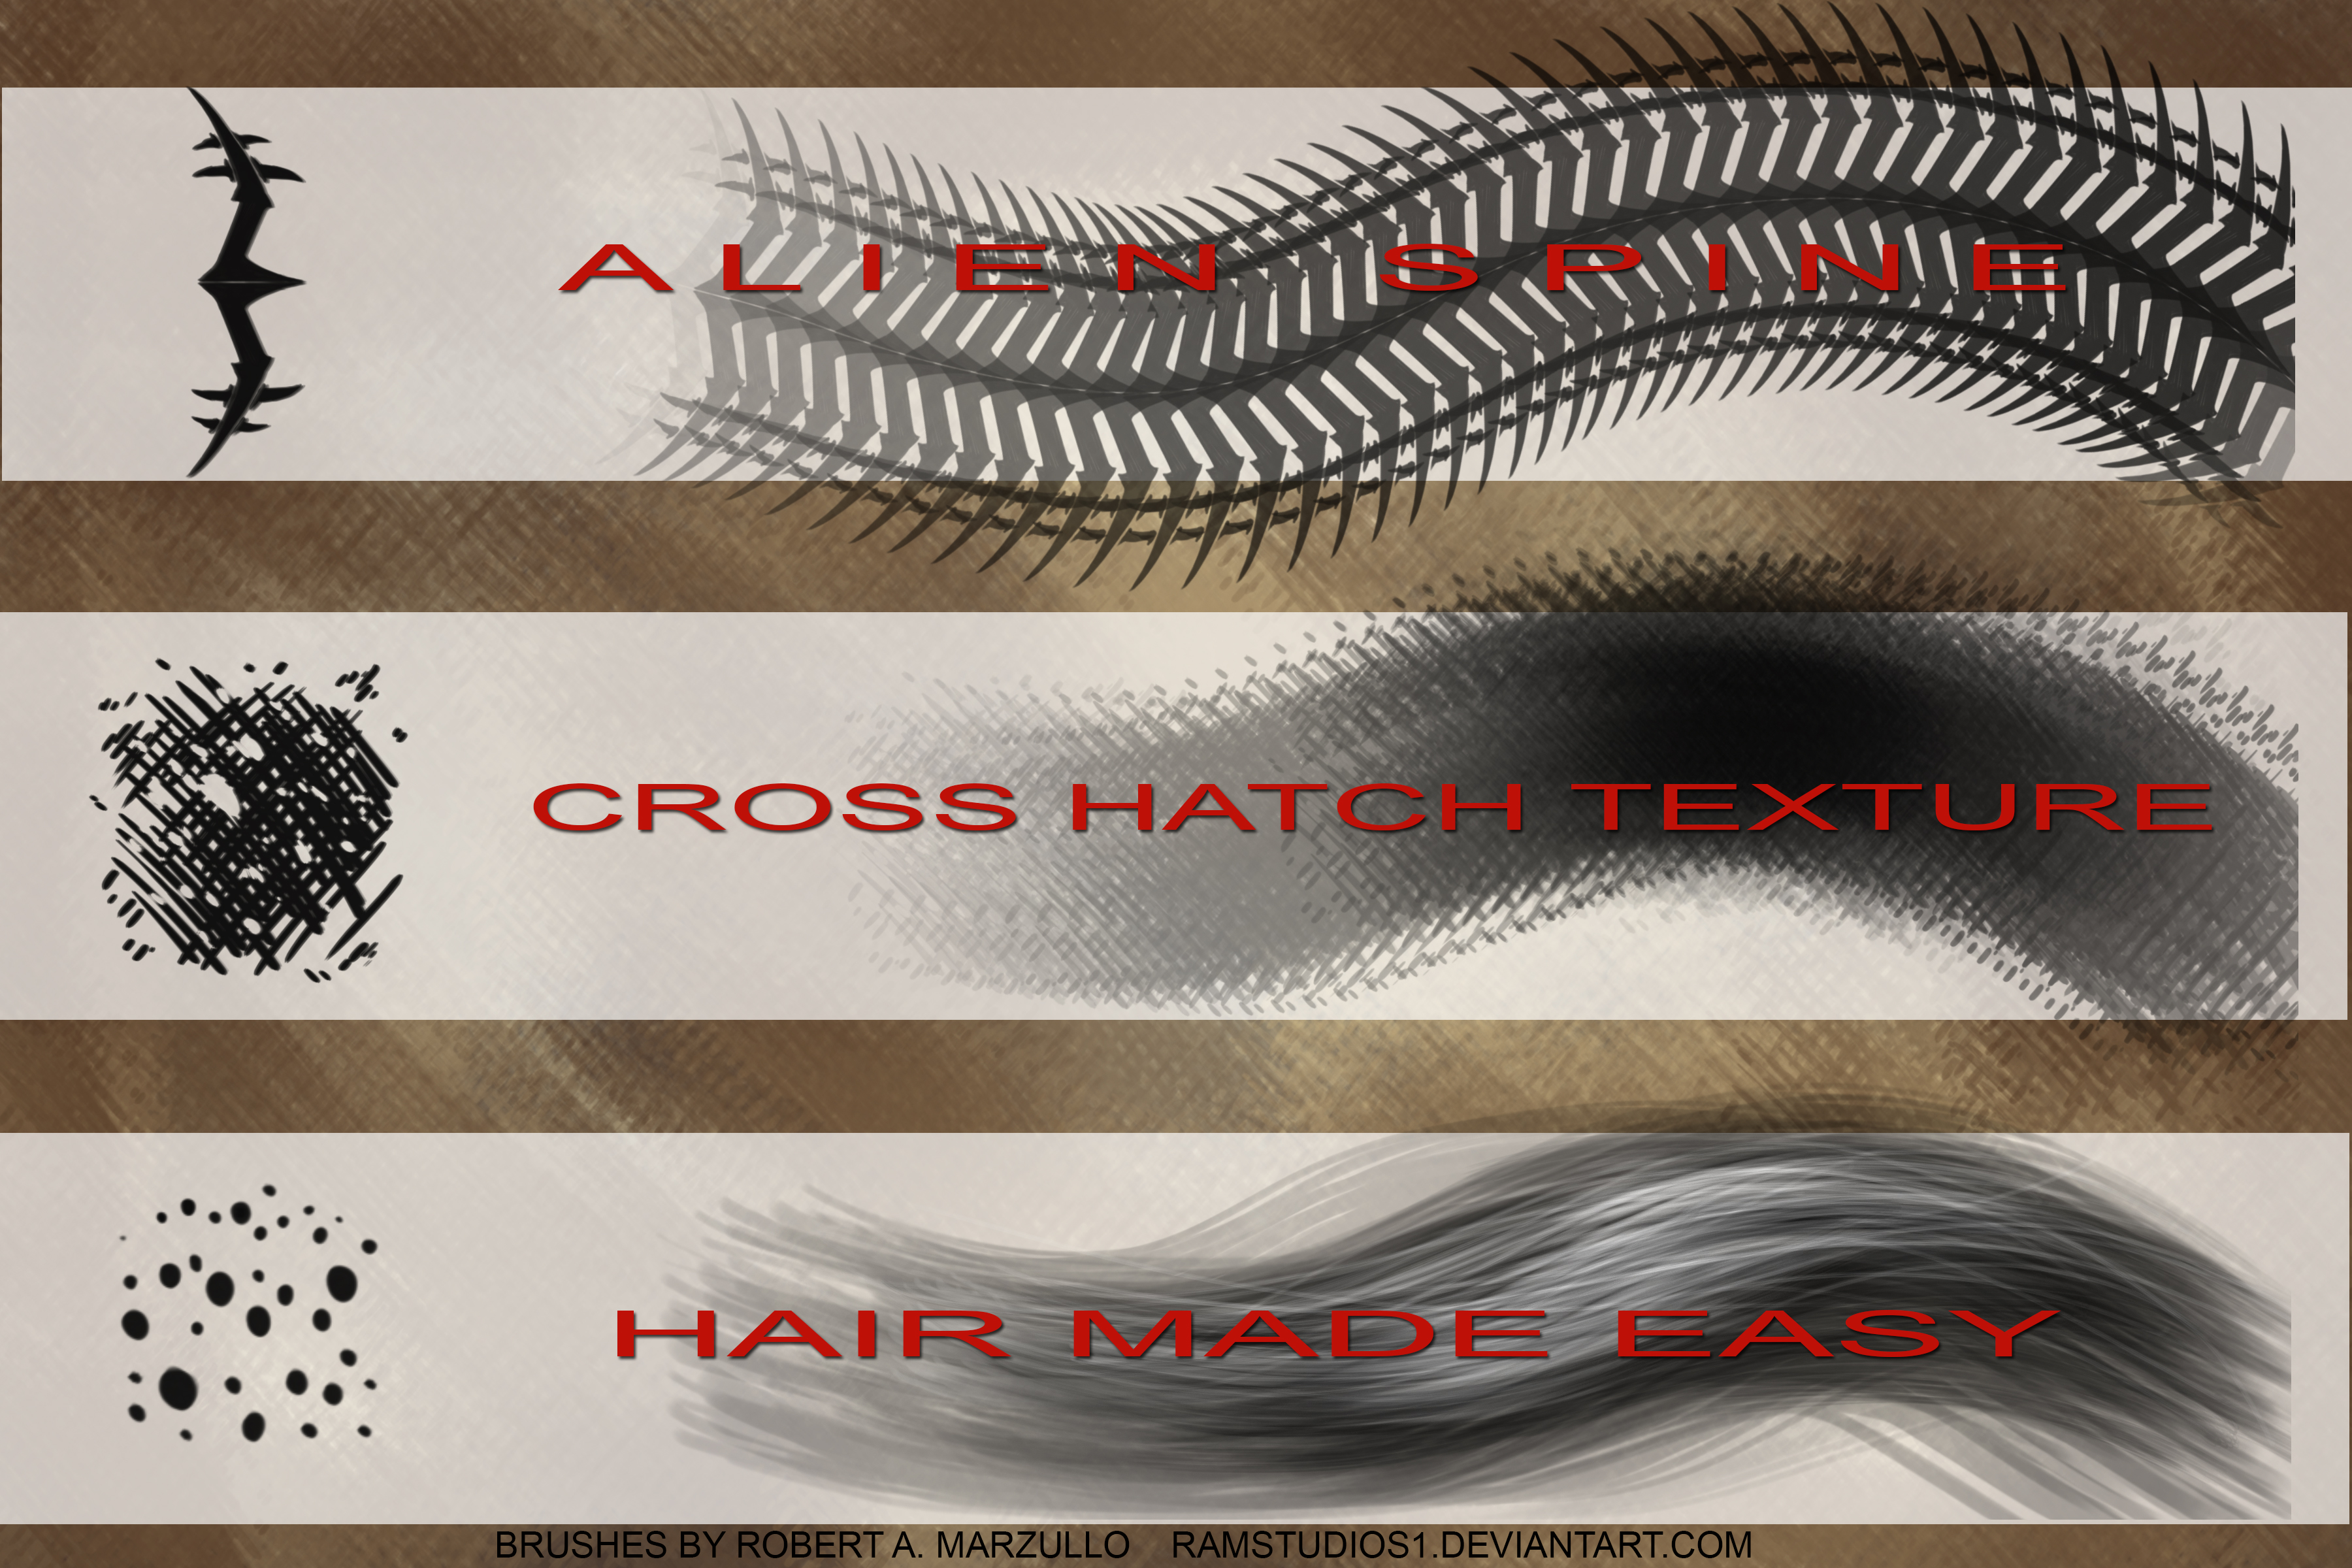 Robs Free Photoshop CC Brushes 2014 by robertmarzullo on DeviantArt